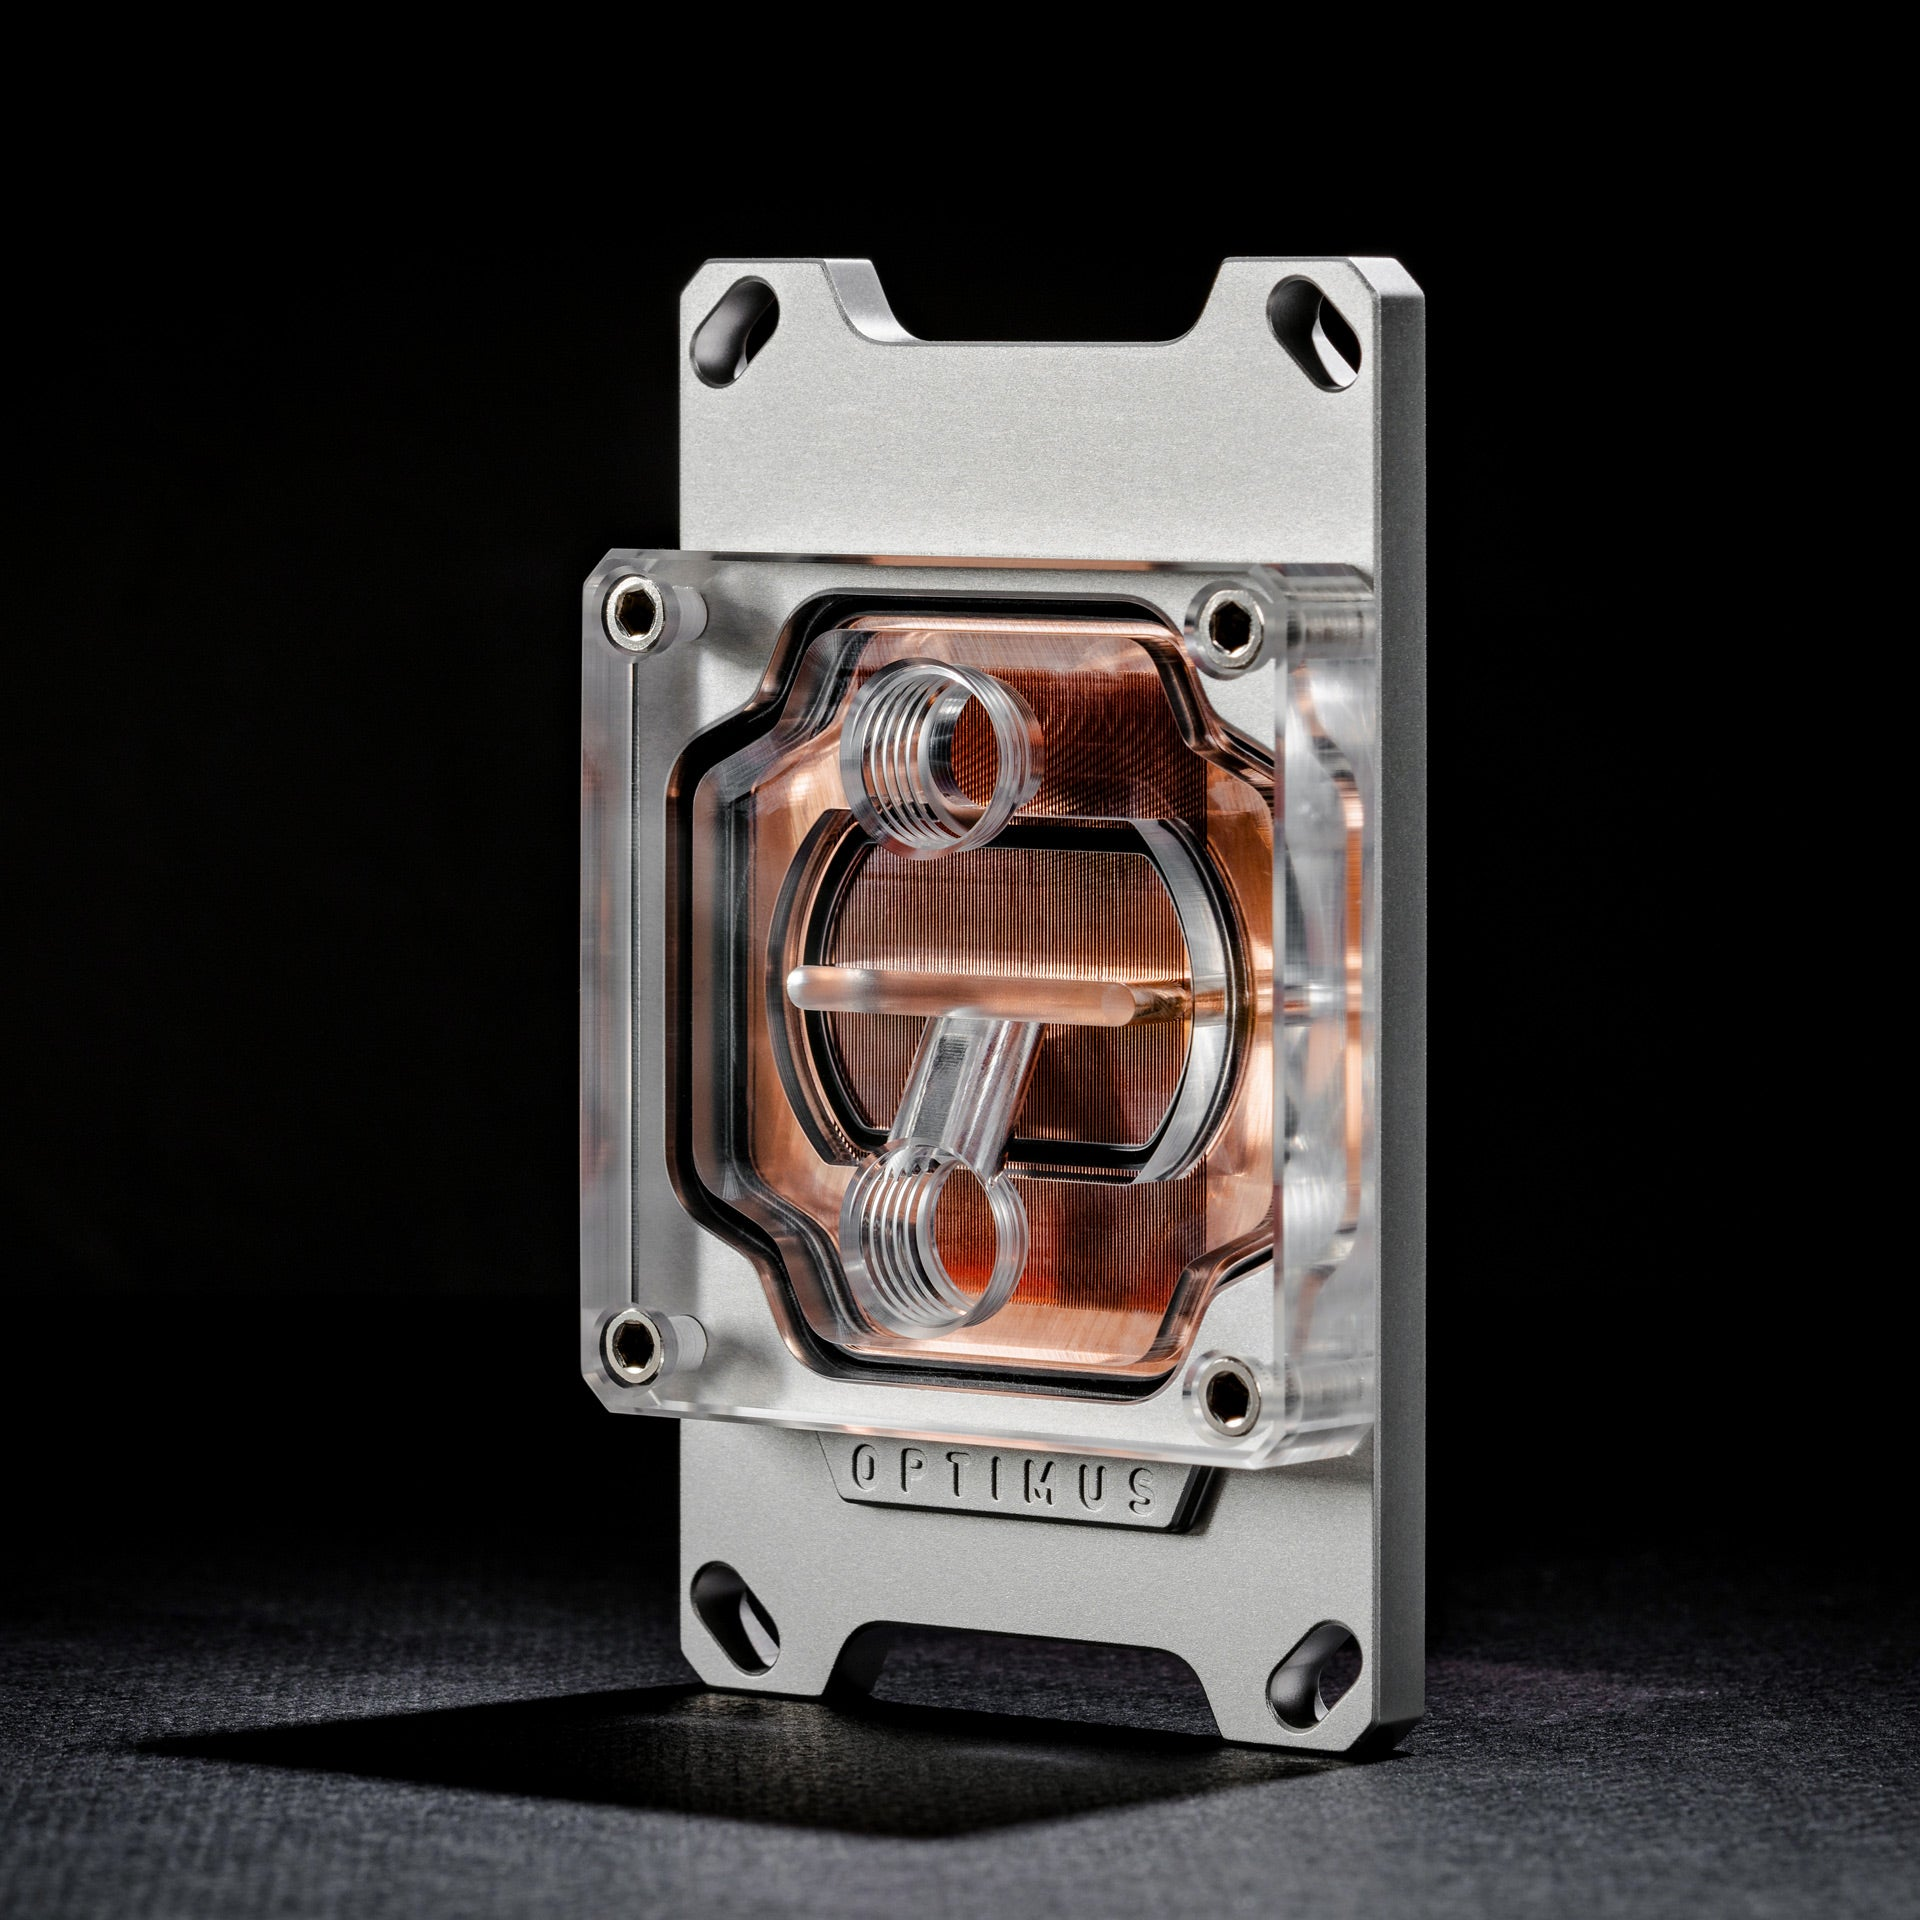 Foundation CPU Block - AMD